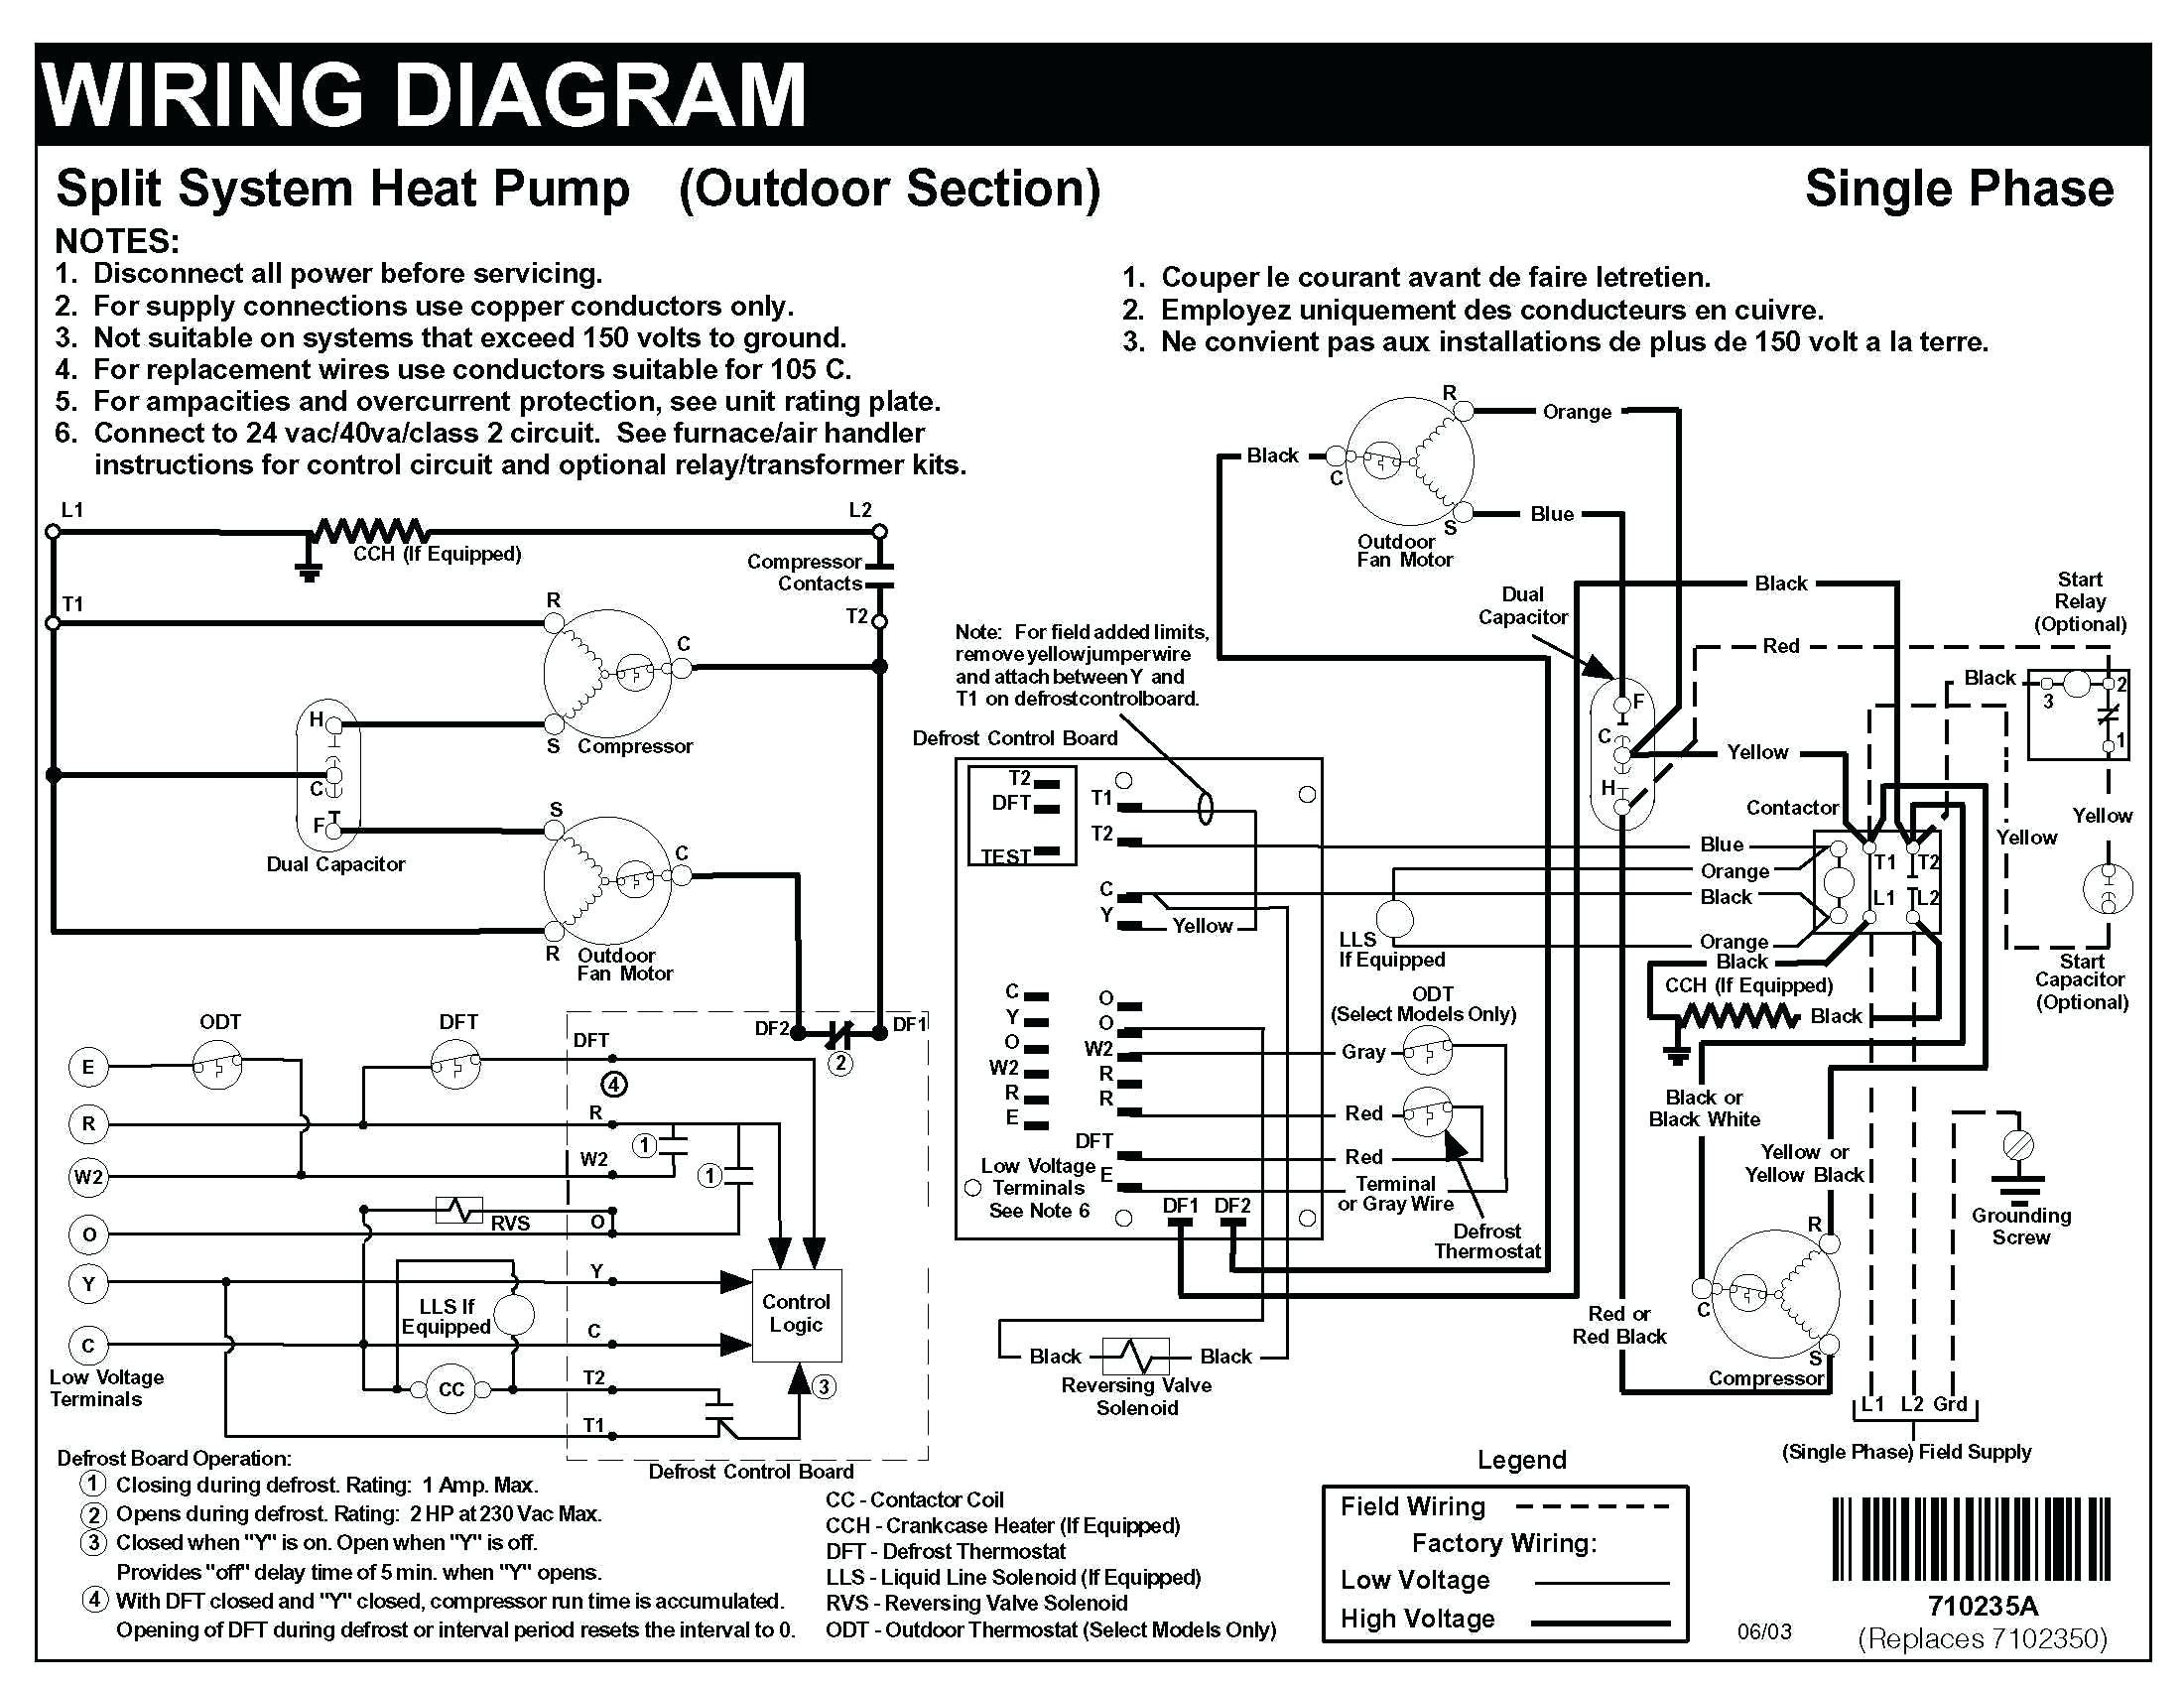 Armstrong Furnace Parts Diagram Old Lennox Wiring Diagram Expert Wiring Diagrams Of Armstrong Furnace Parts Diagram